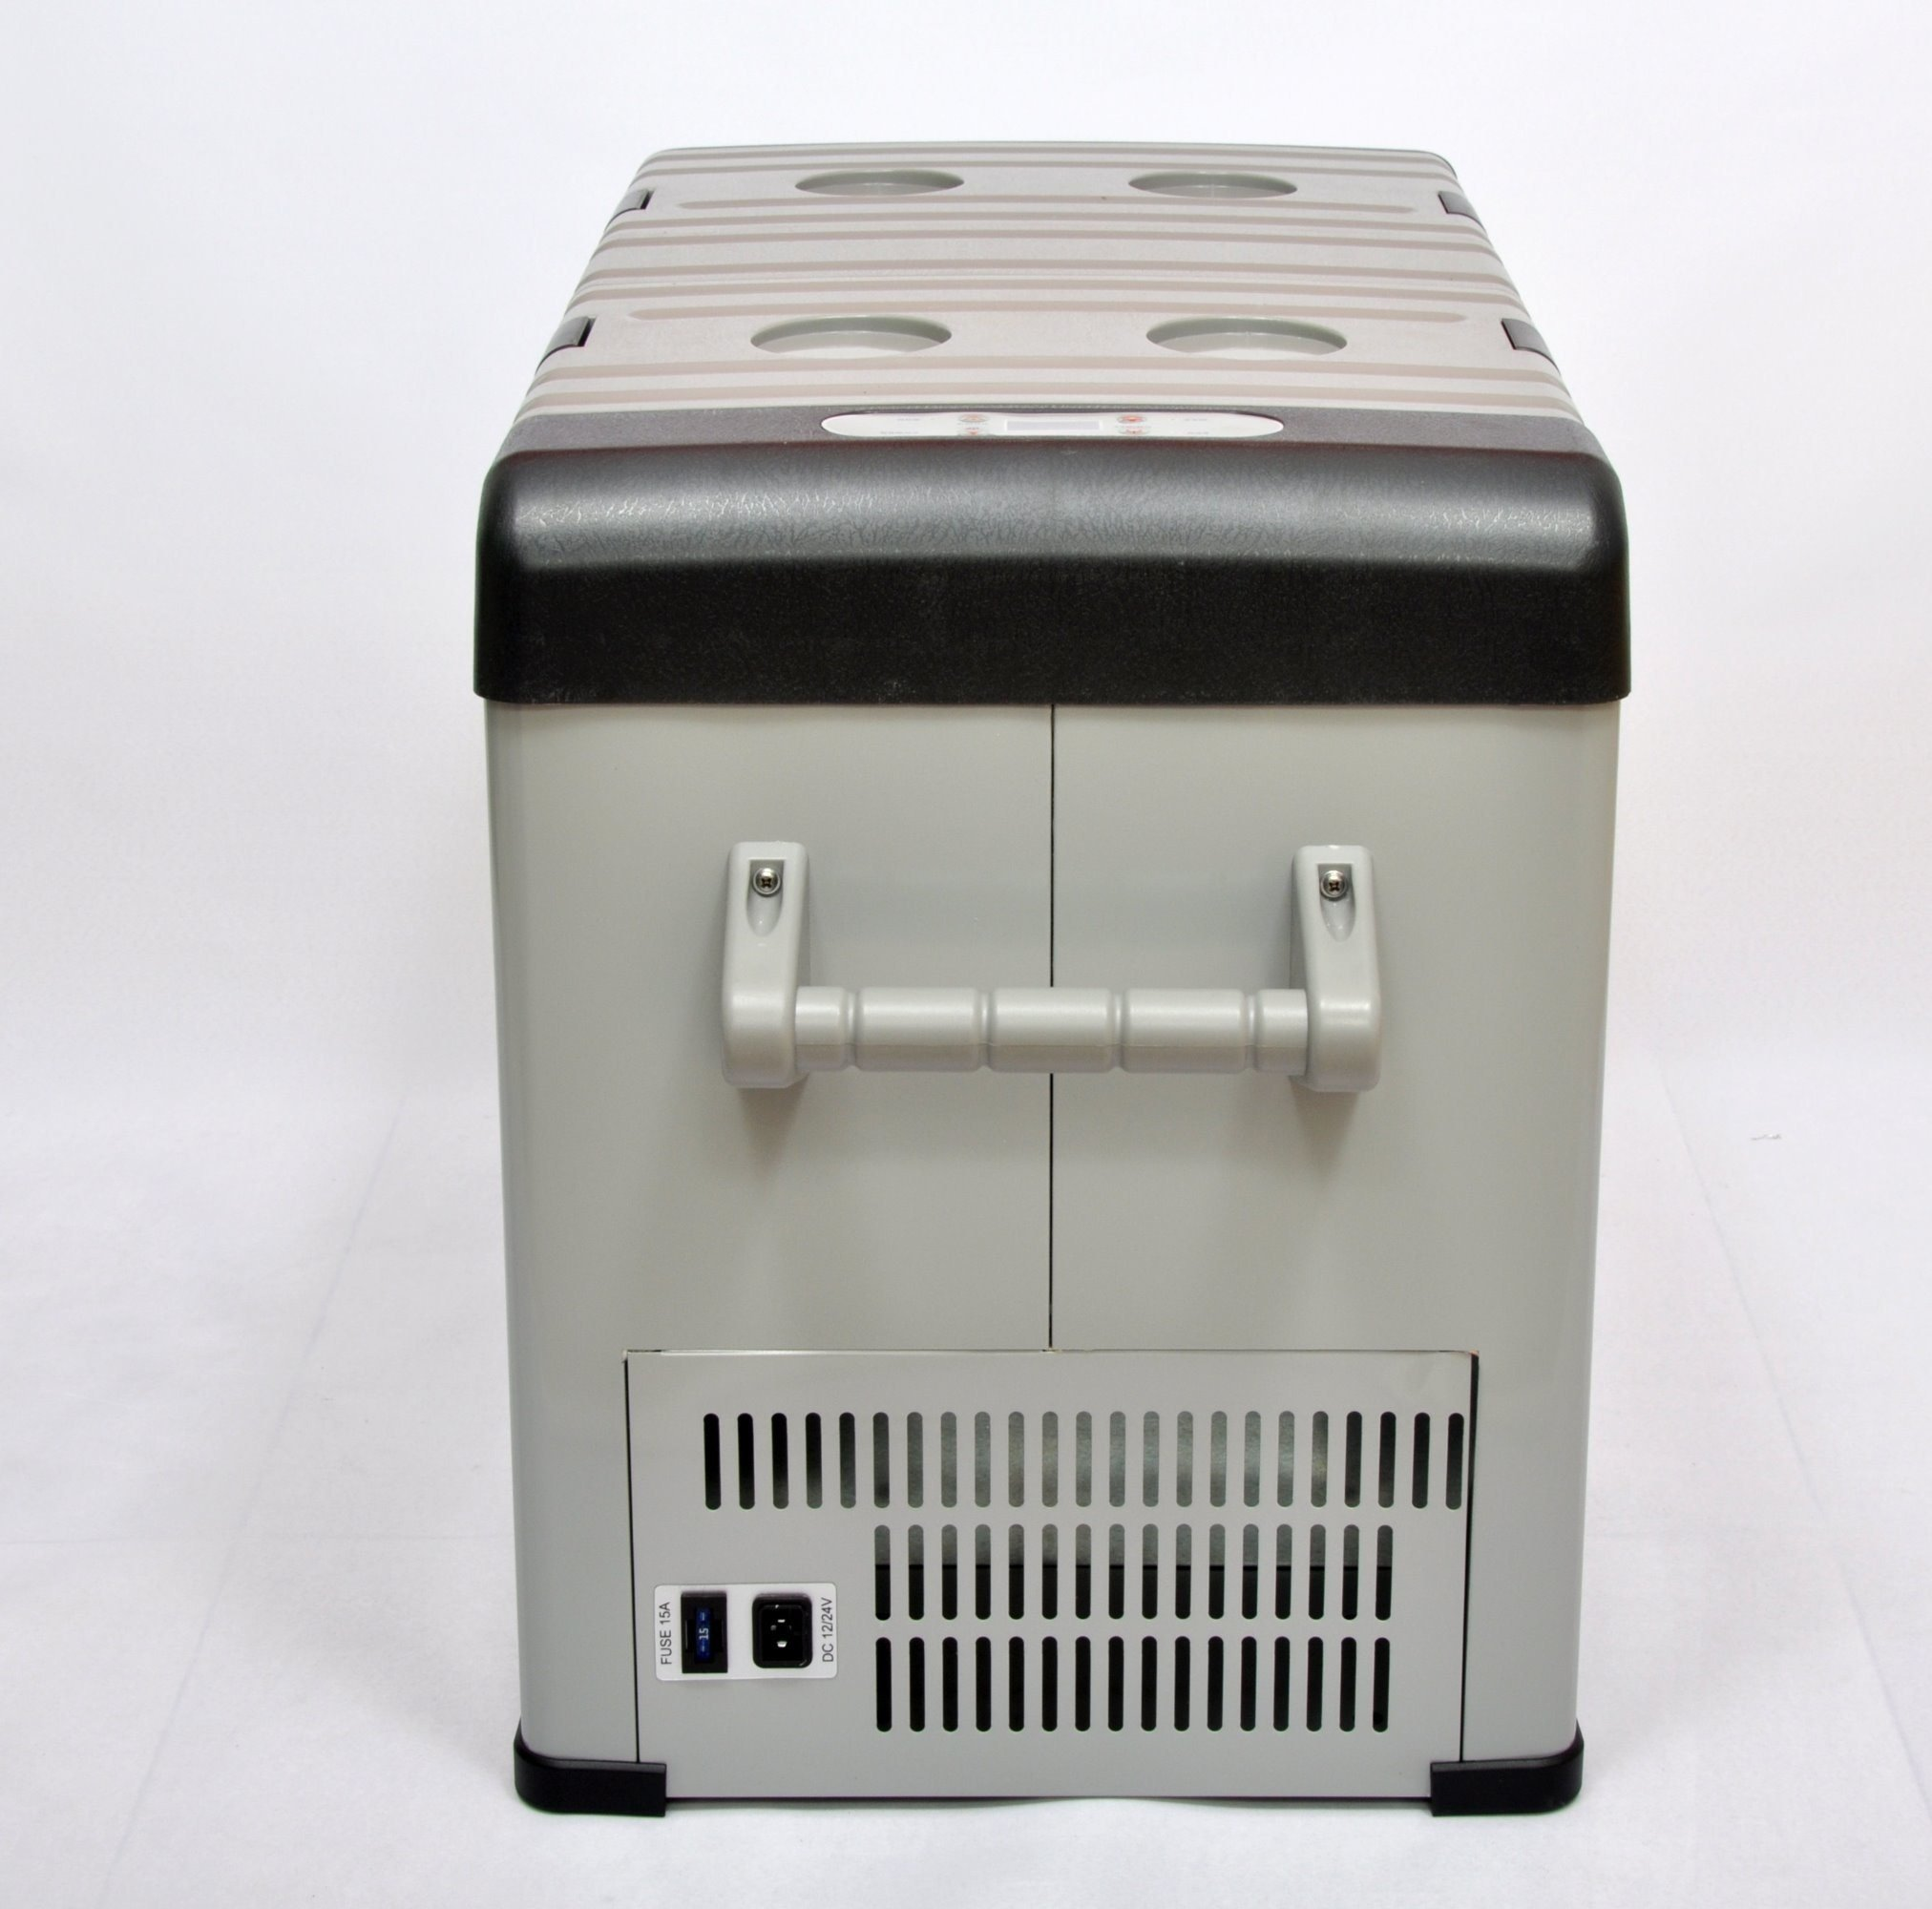 12V/24V 52L DC Portable Refrigerator for Car